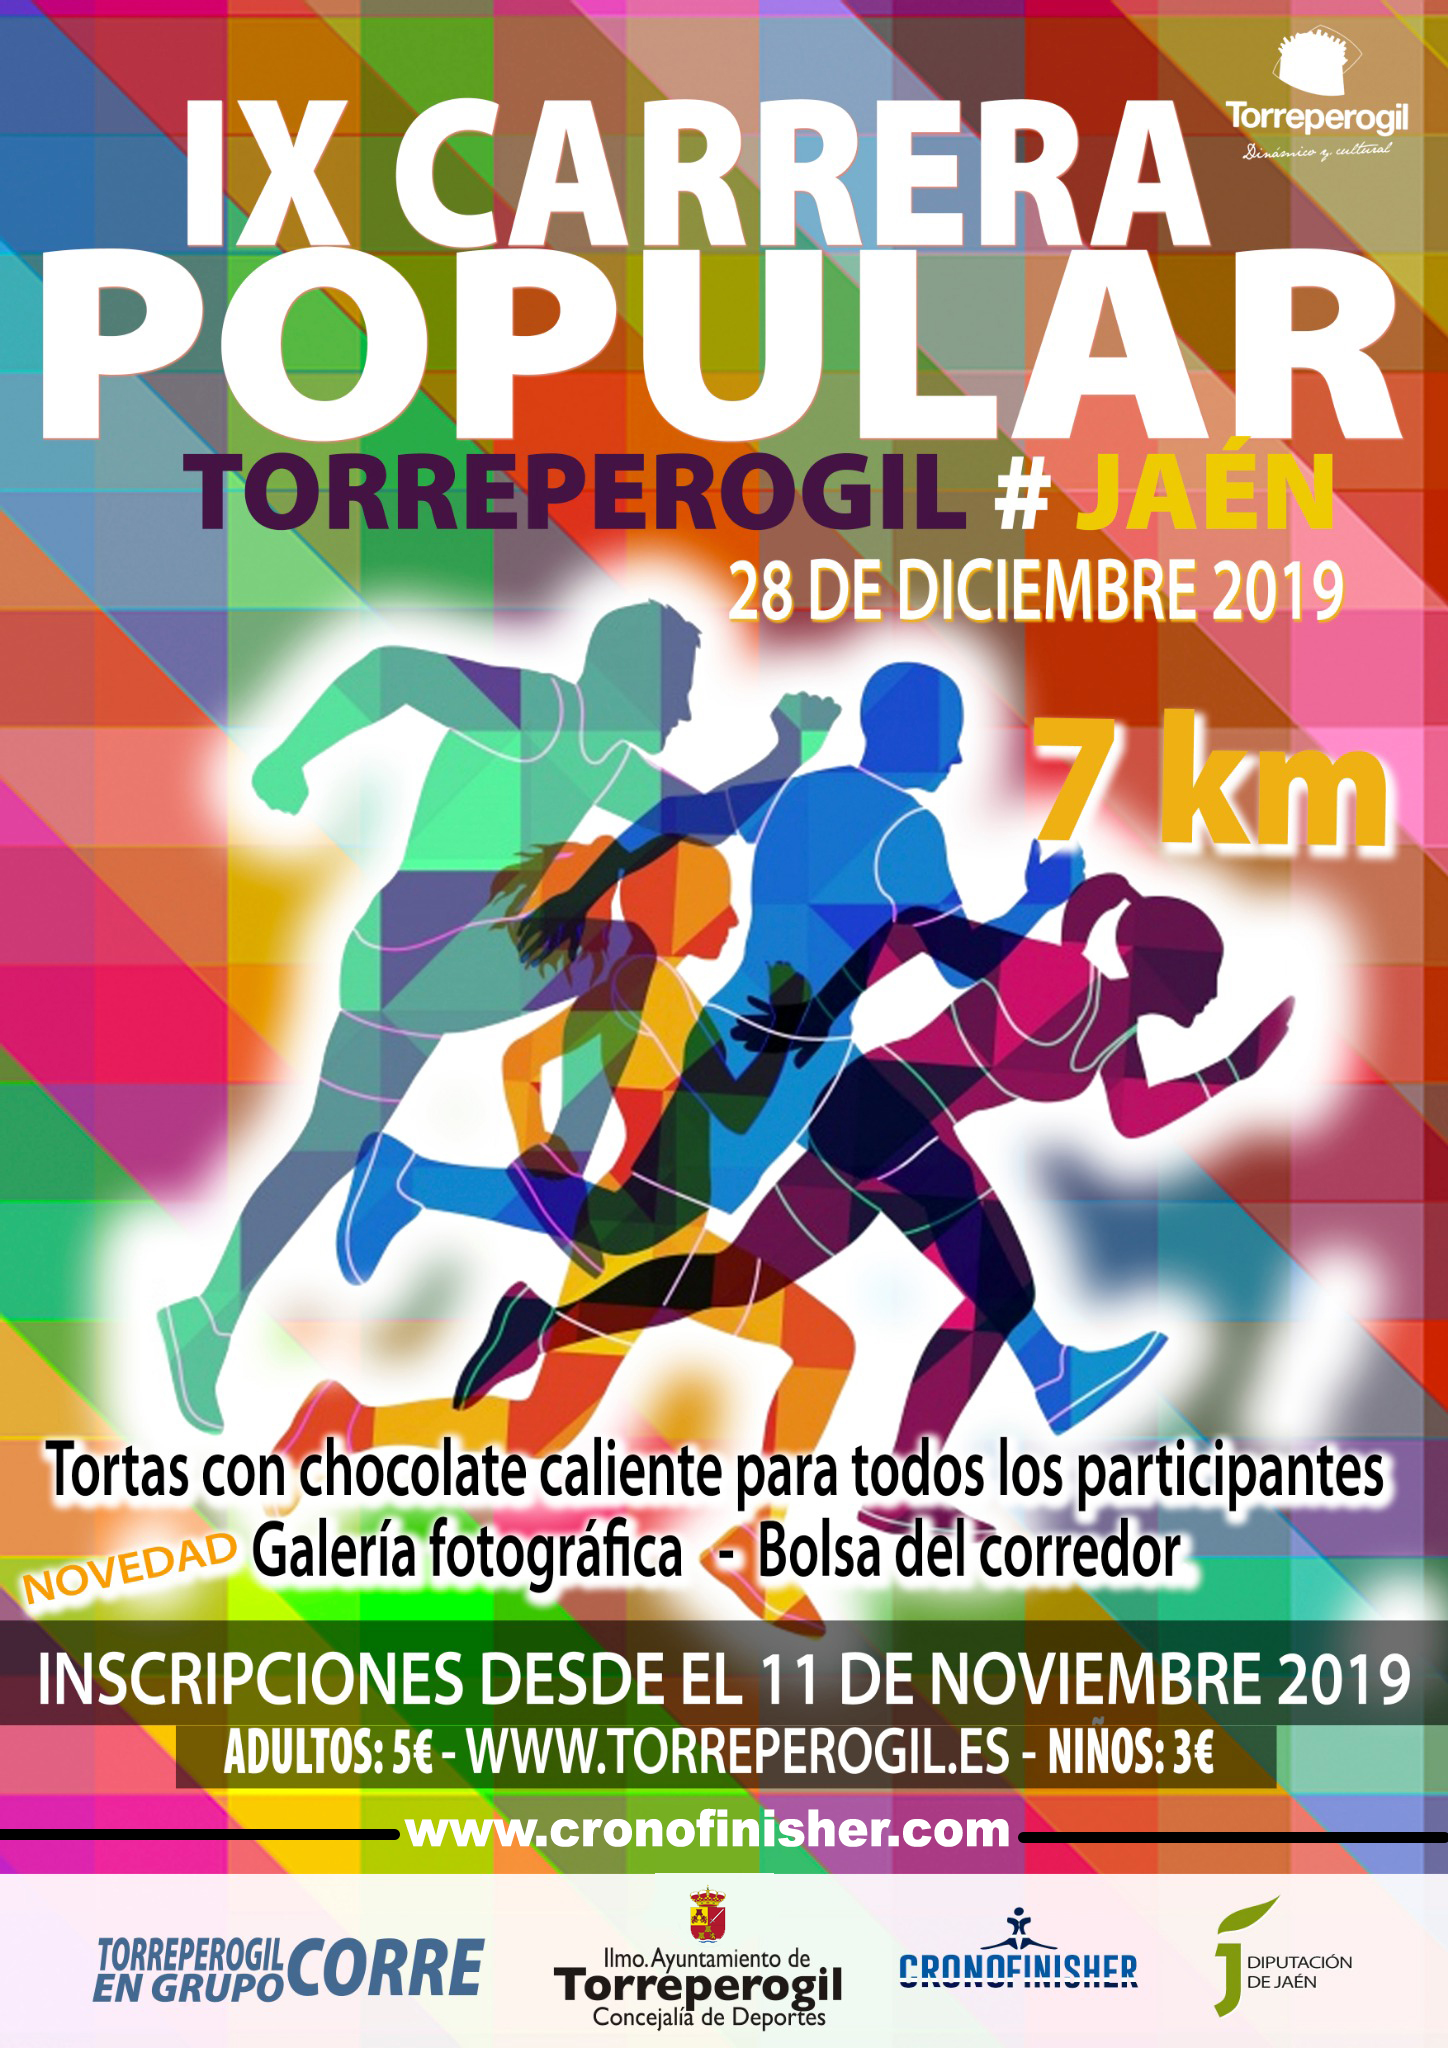 CARRERA POPULAR DE TORREPEROGIL 2018